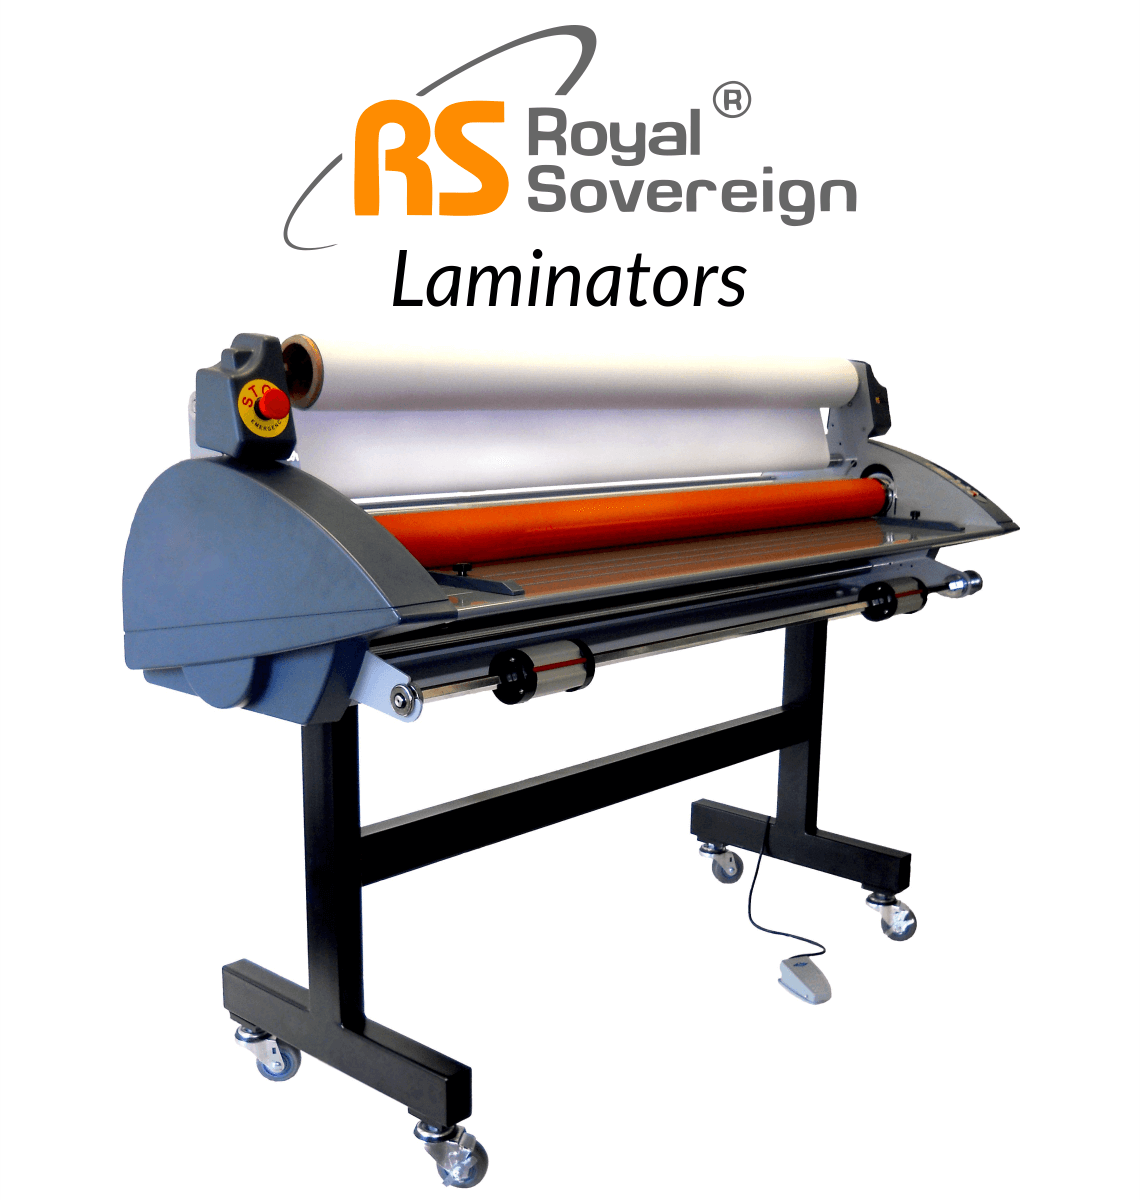 Browse Royal Sovereign Laminators